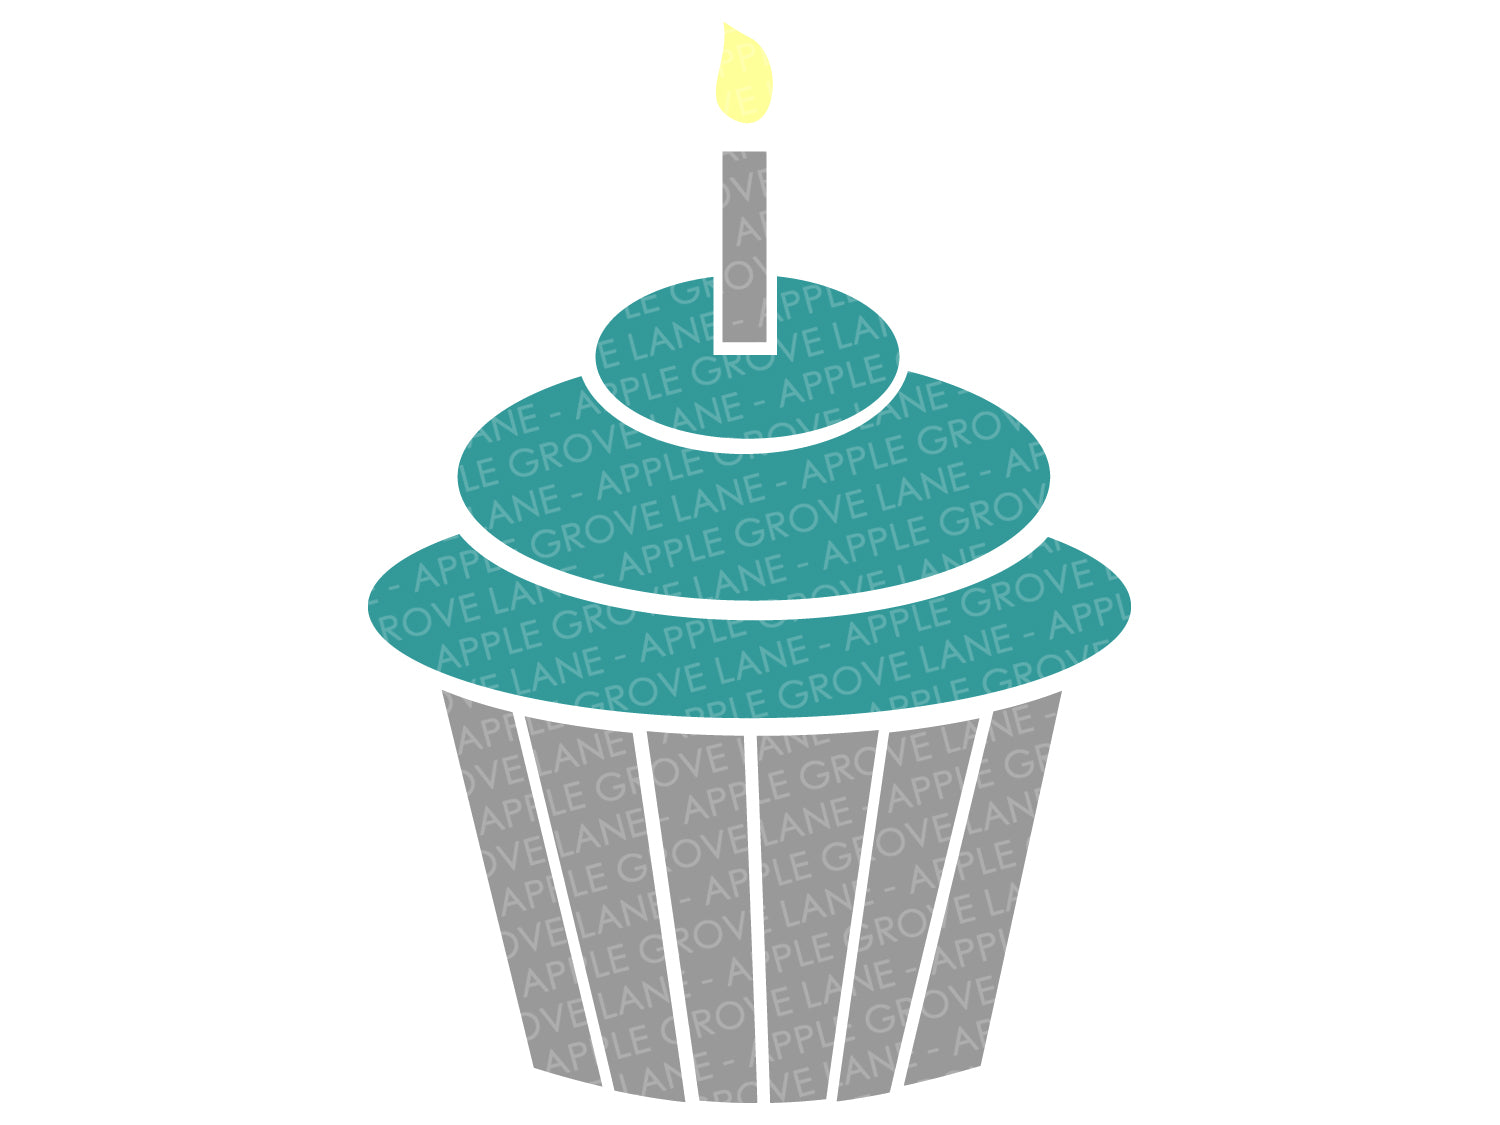 Birthday Cupcake SVG - Birthday Svg - Birthday Candle SVG - Cupcake Svg - Birthday Party Svg - Birthday Cake Svg - Svg Eps Png Dxf